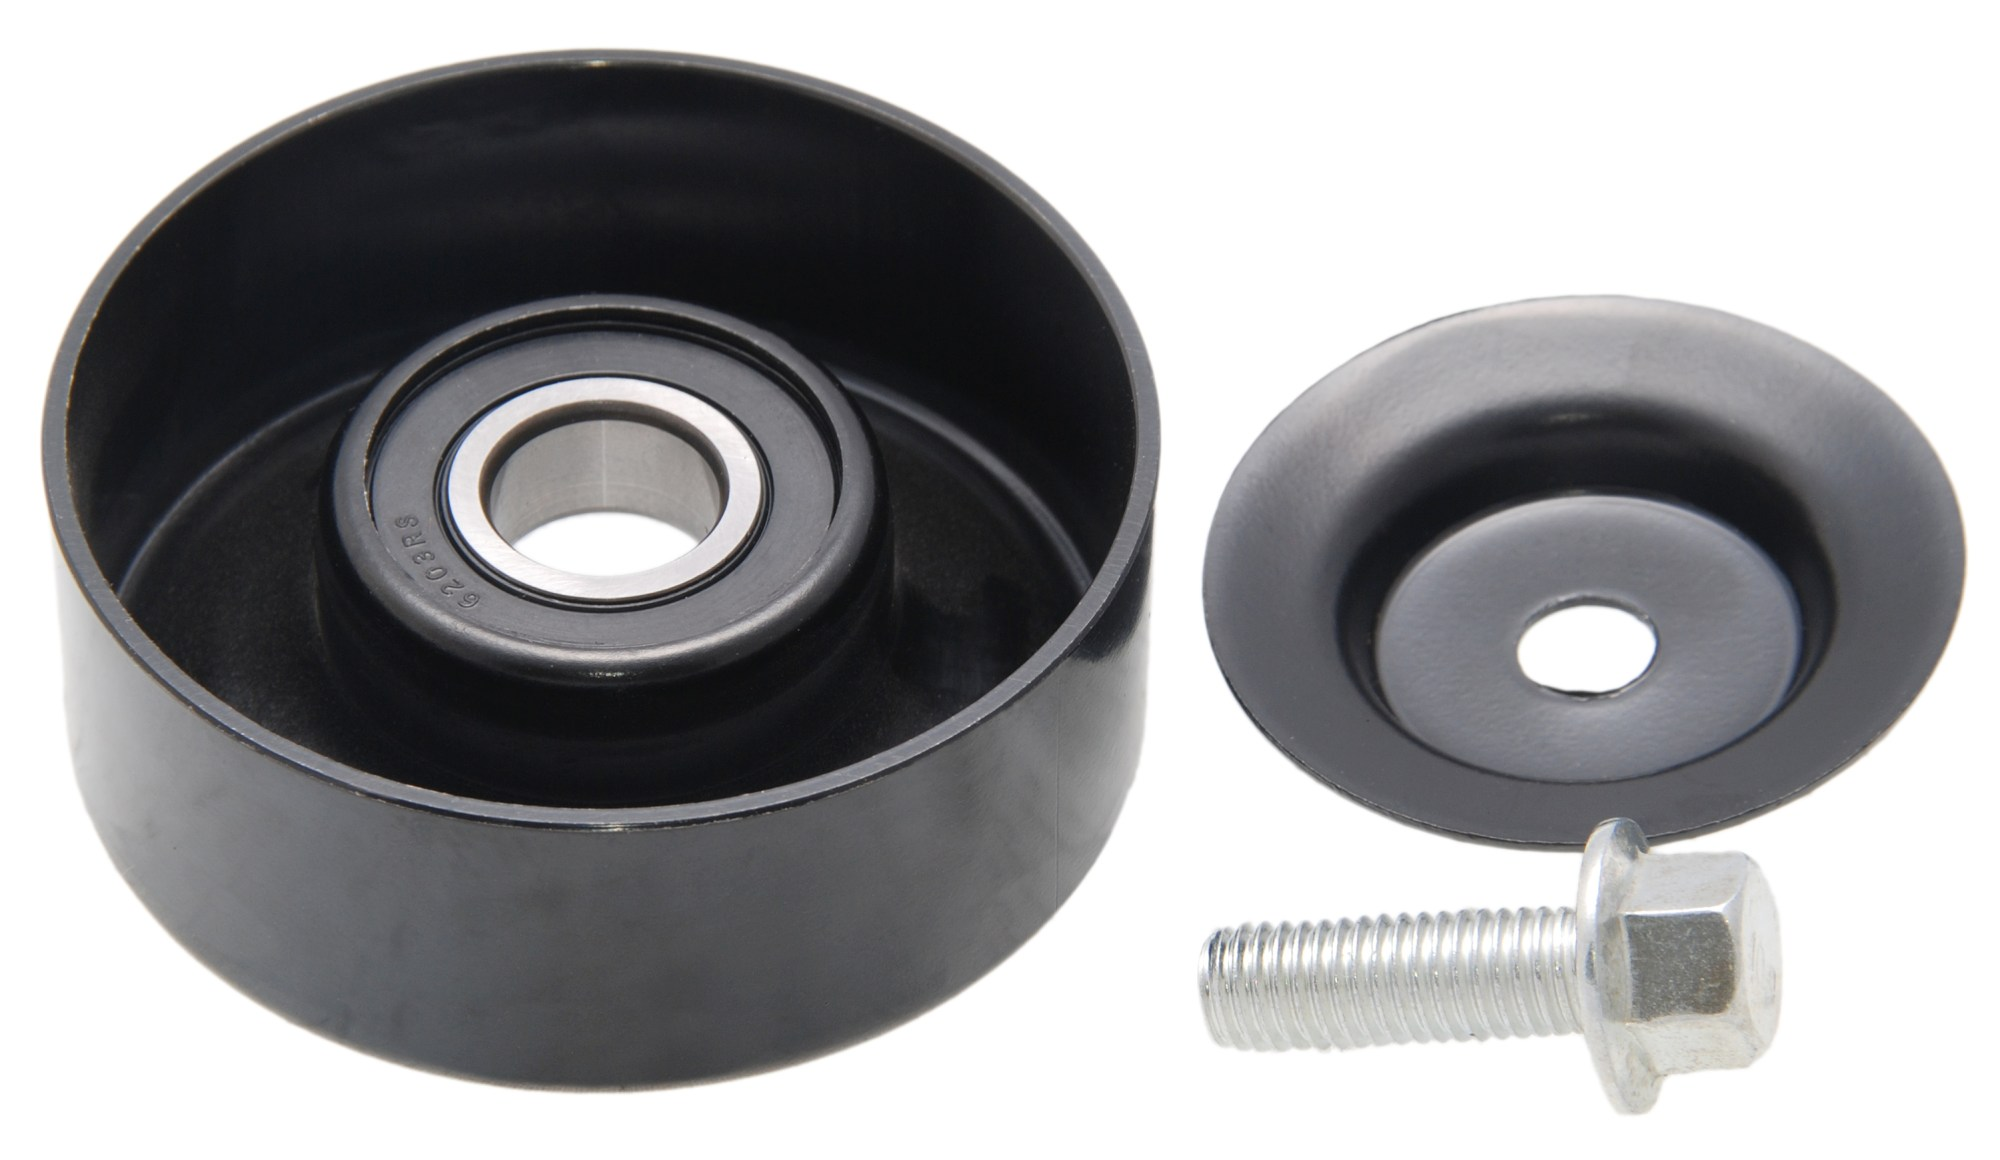 hight resolution of 2002 nissan altima usa engine timing idler pulley 0287 l31 0287 l31